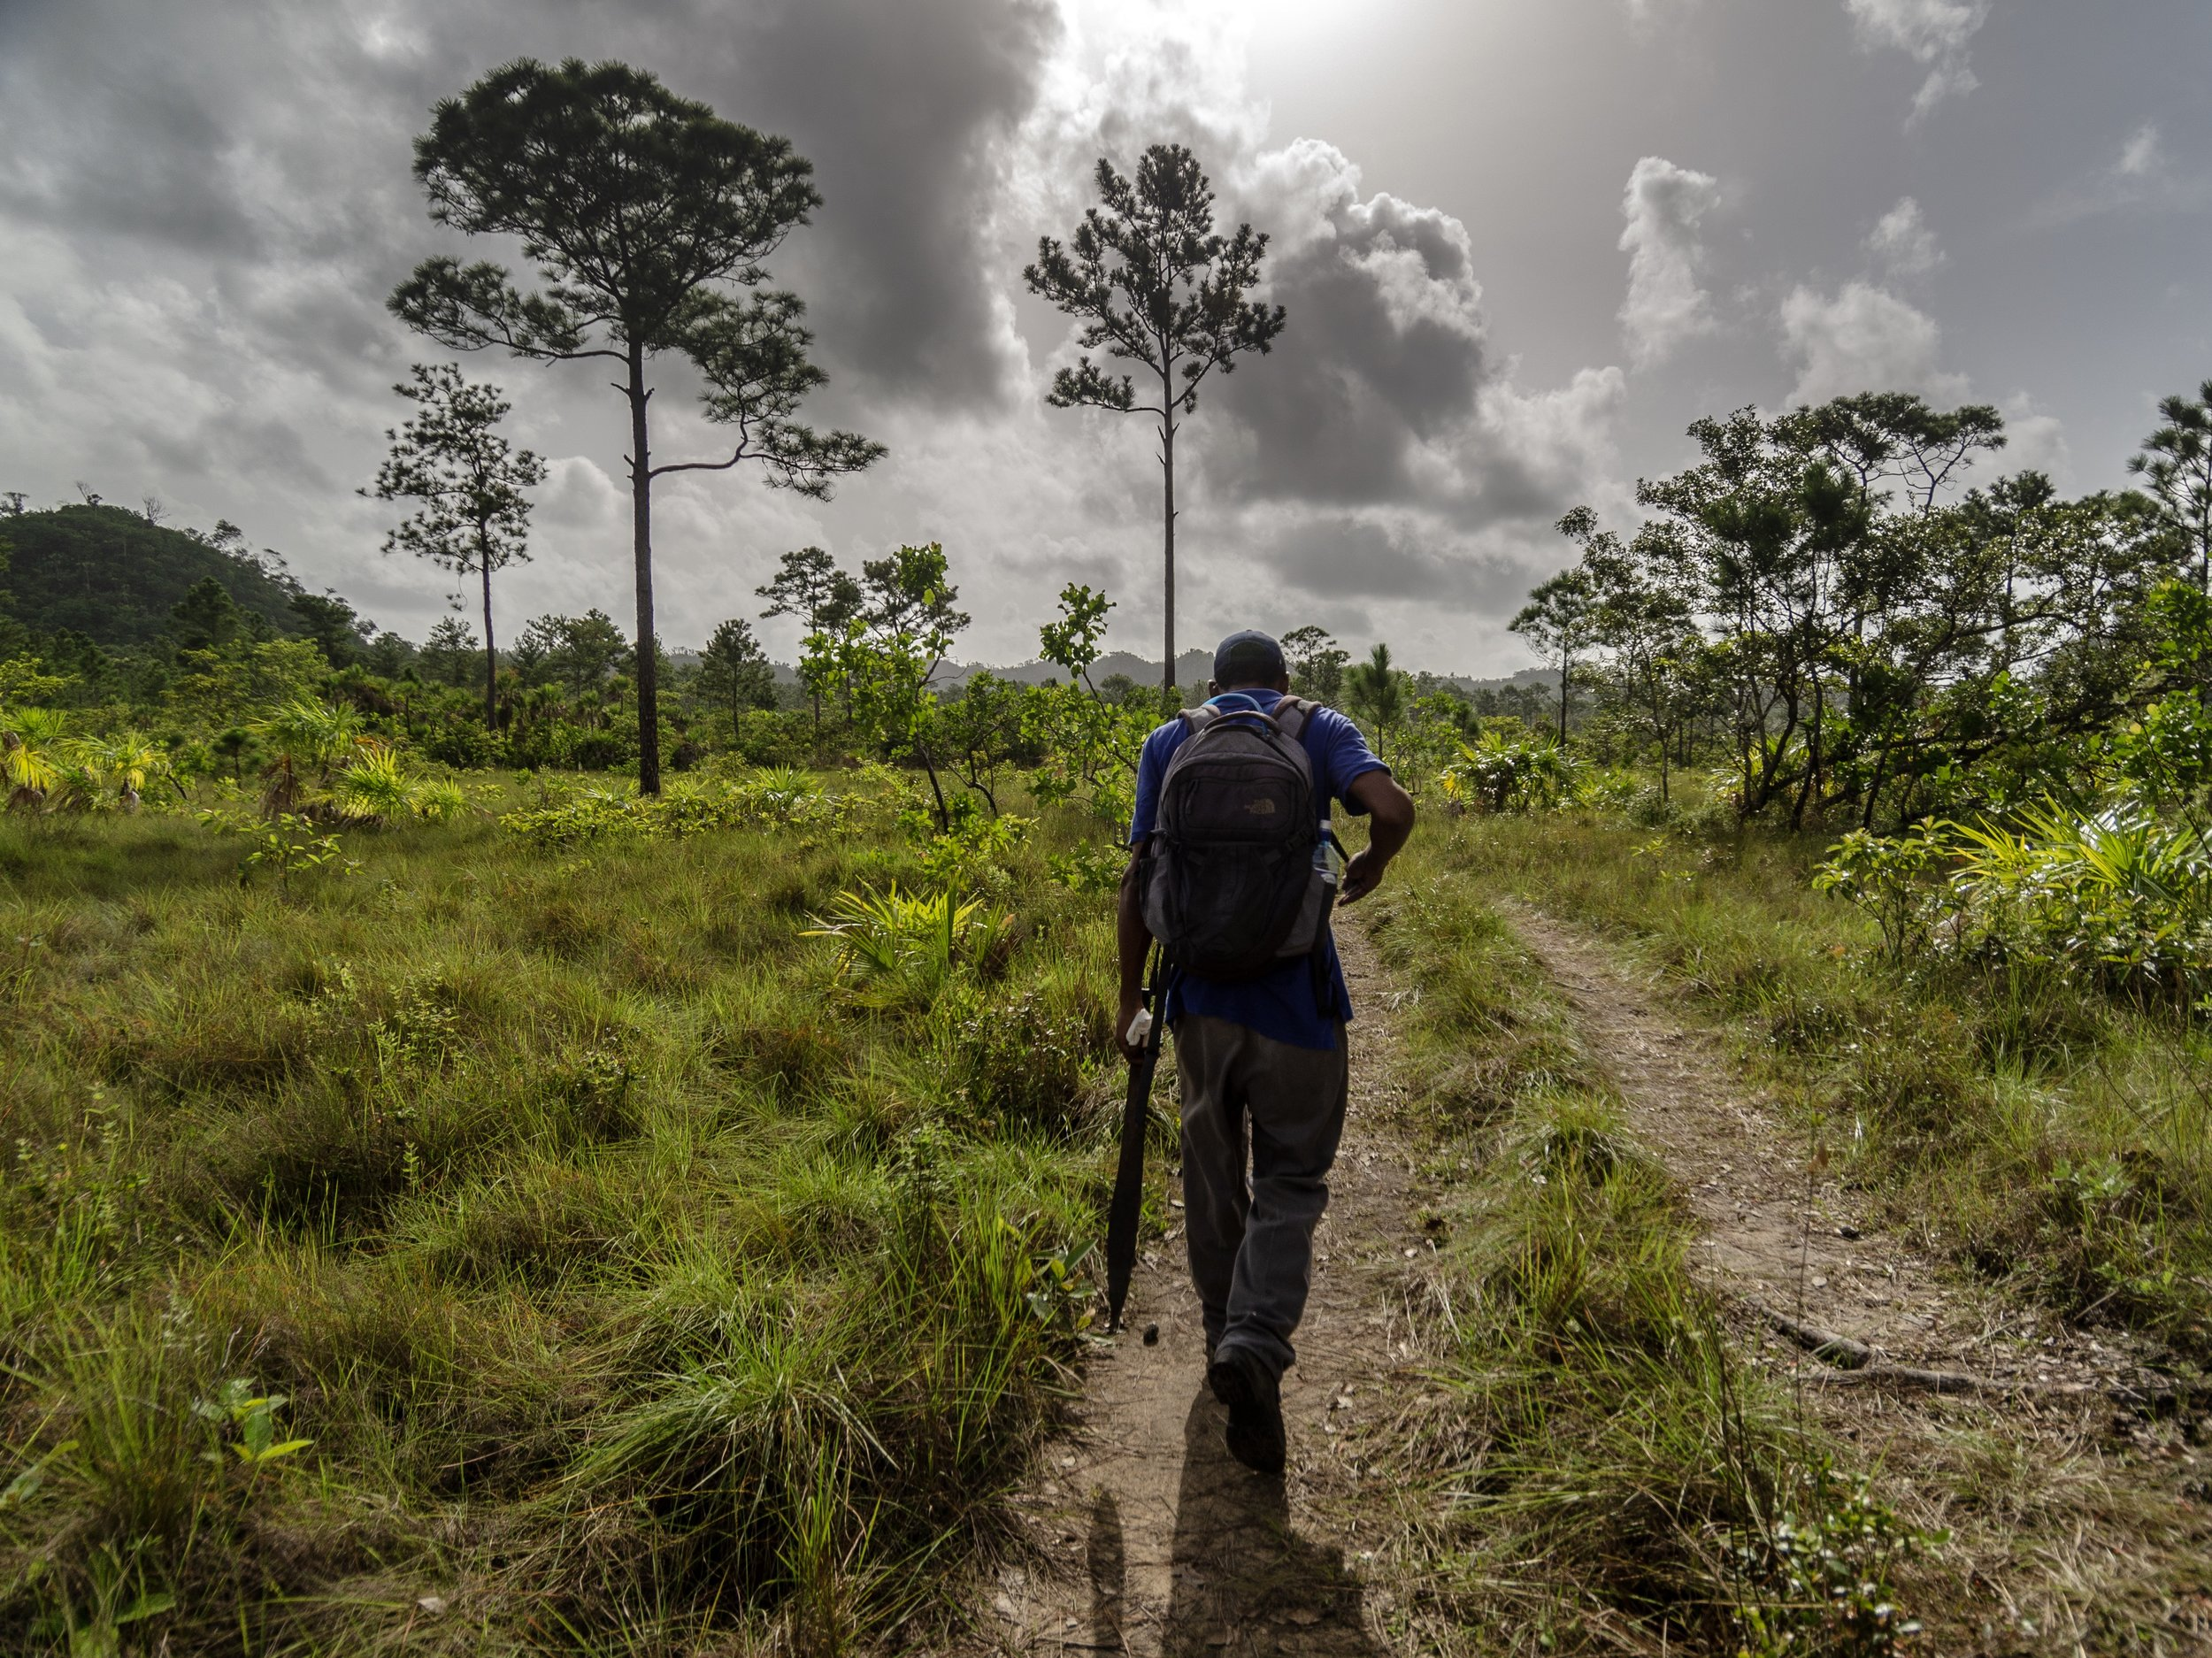 Stevan Renaud leading the way across the savannah on an early morning trek into Runaway Creek to check trail cameras.